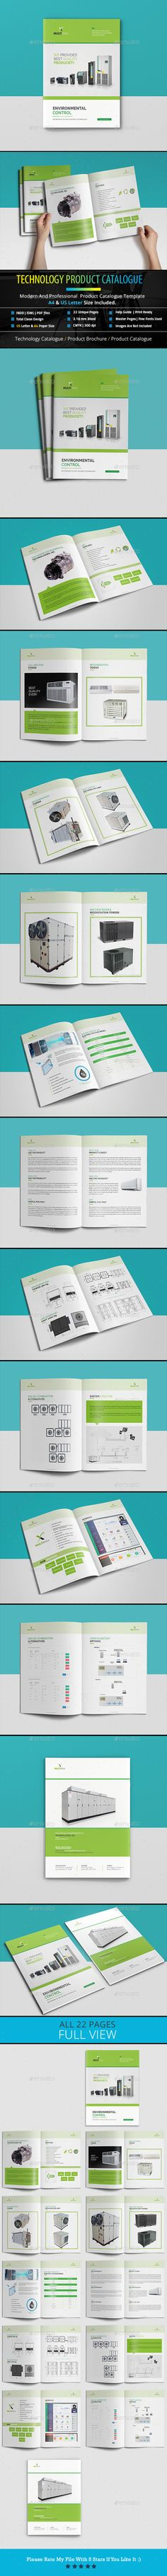 Technology Product Catalog Template InDesign INDD - 22 Unique Pages - A4 & US Letter Size